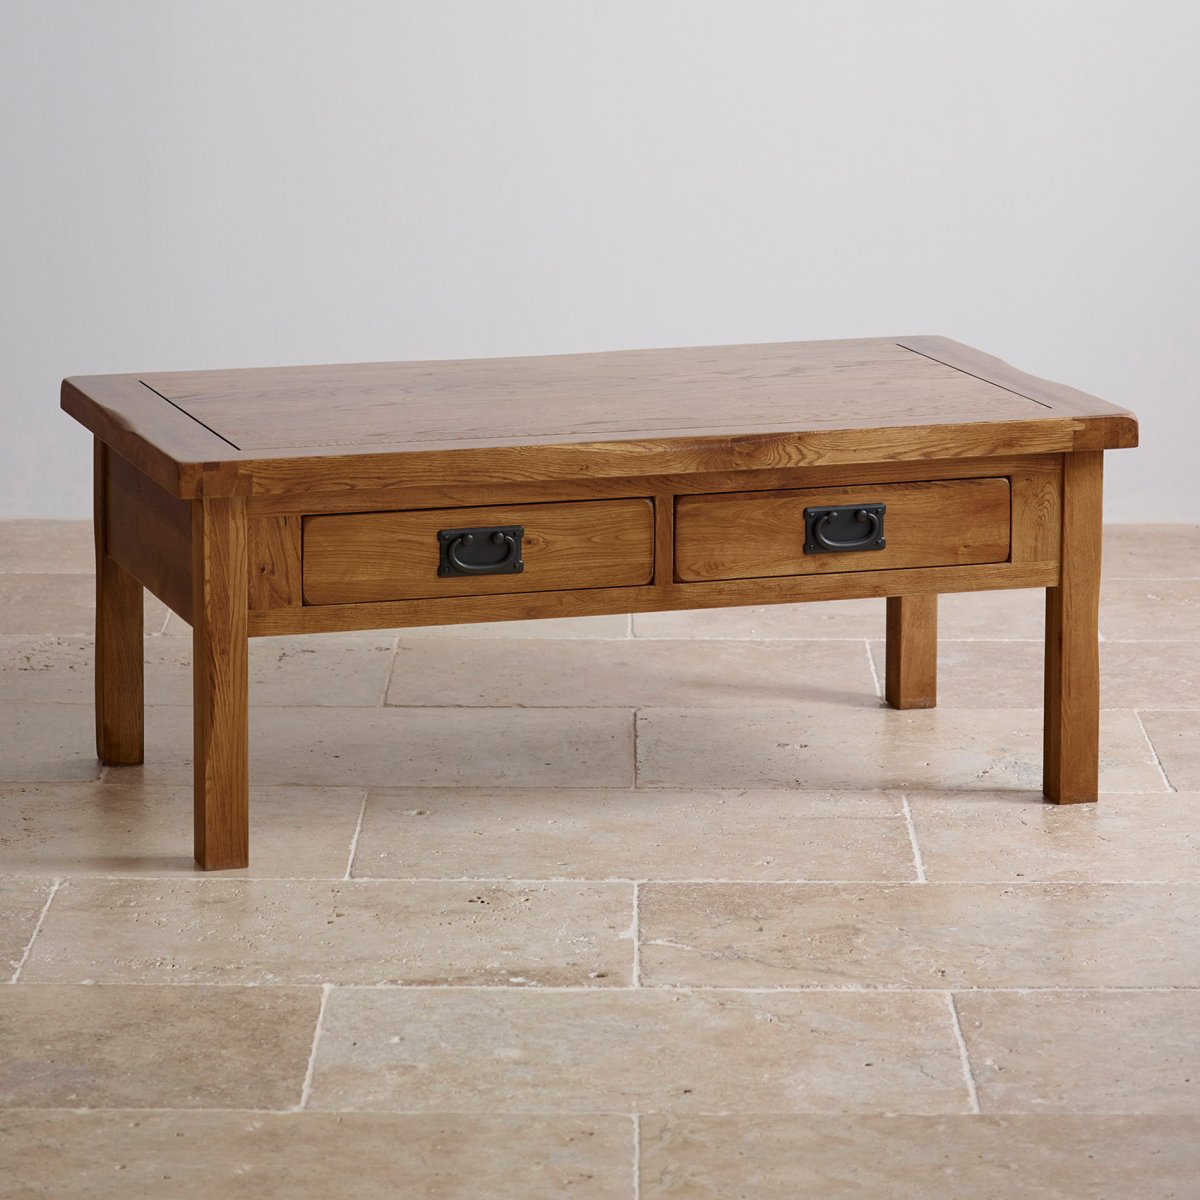 Coffee Table Leather Drawers: Original Rustic 4 Drawer Coffee Table In Solid Oak